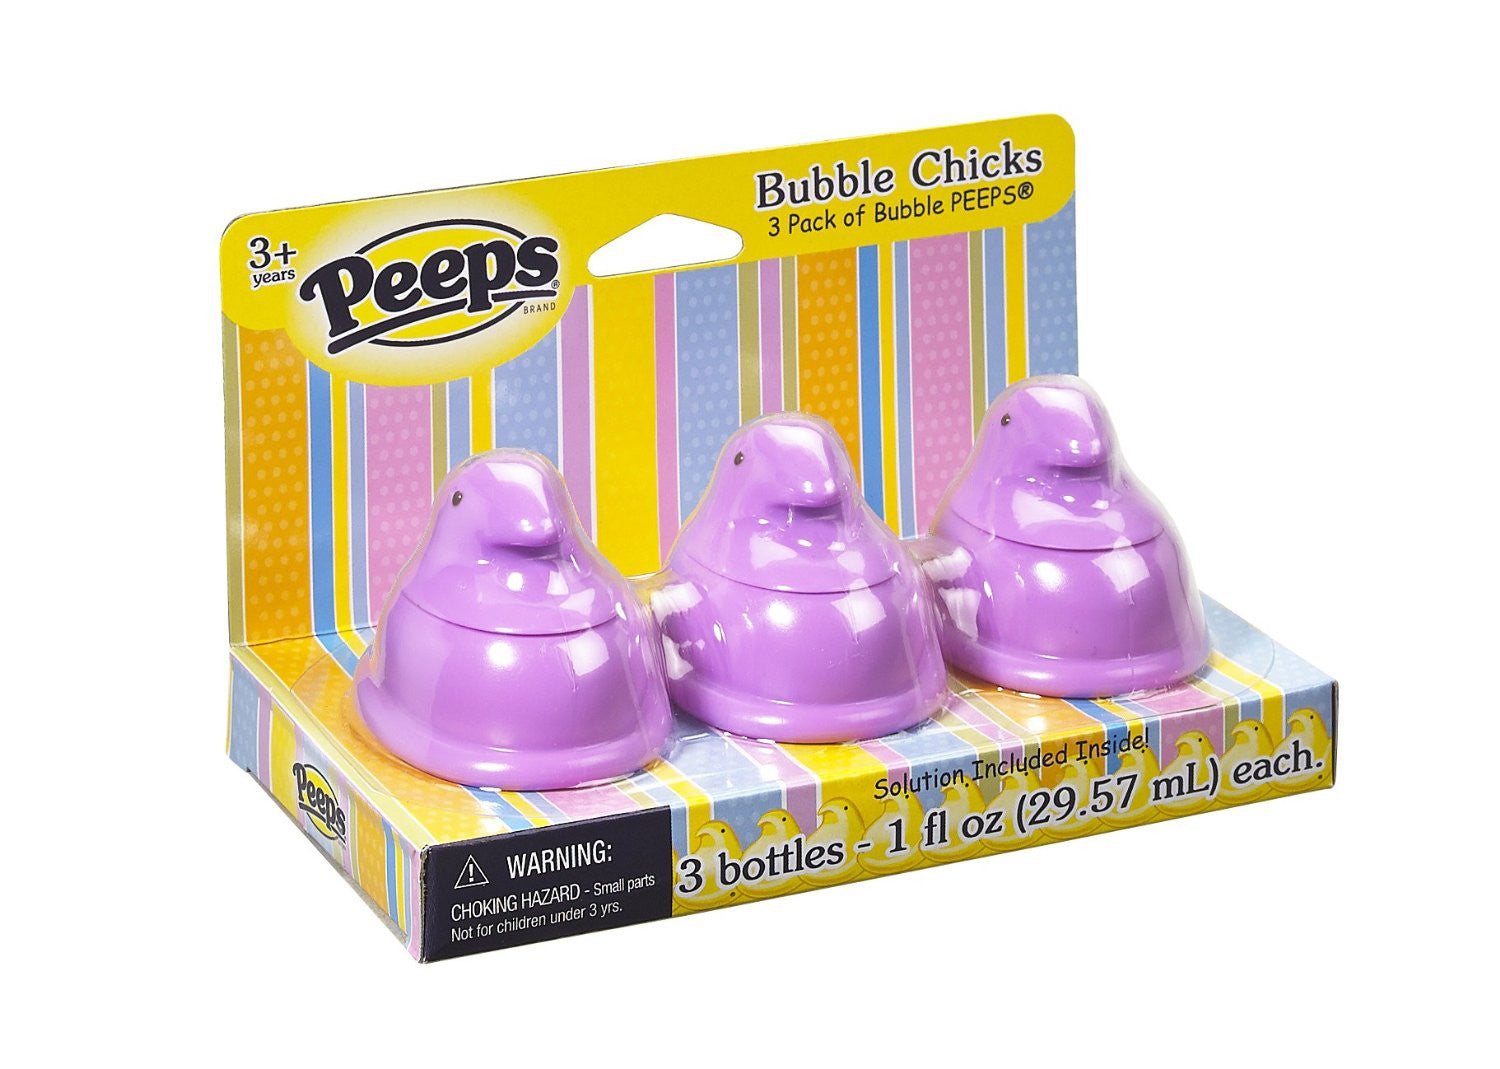 Peeps Bubble Chicks Purple by Little Kids - Pack of 3 Bubbles Bottles - Off The Wall Toys and Gifts